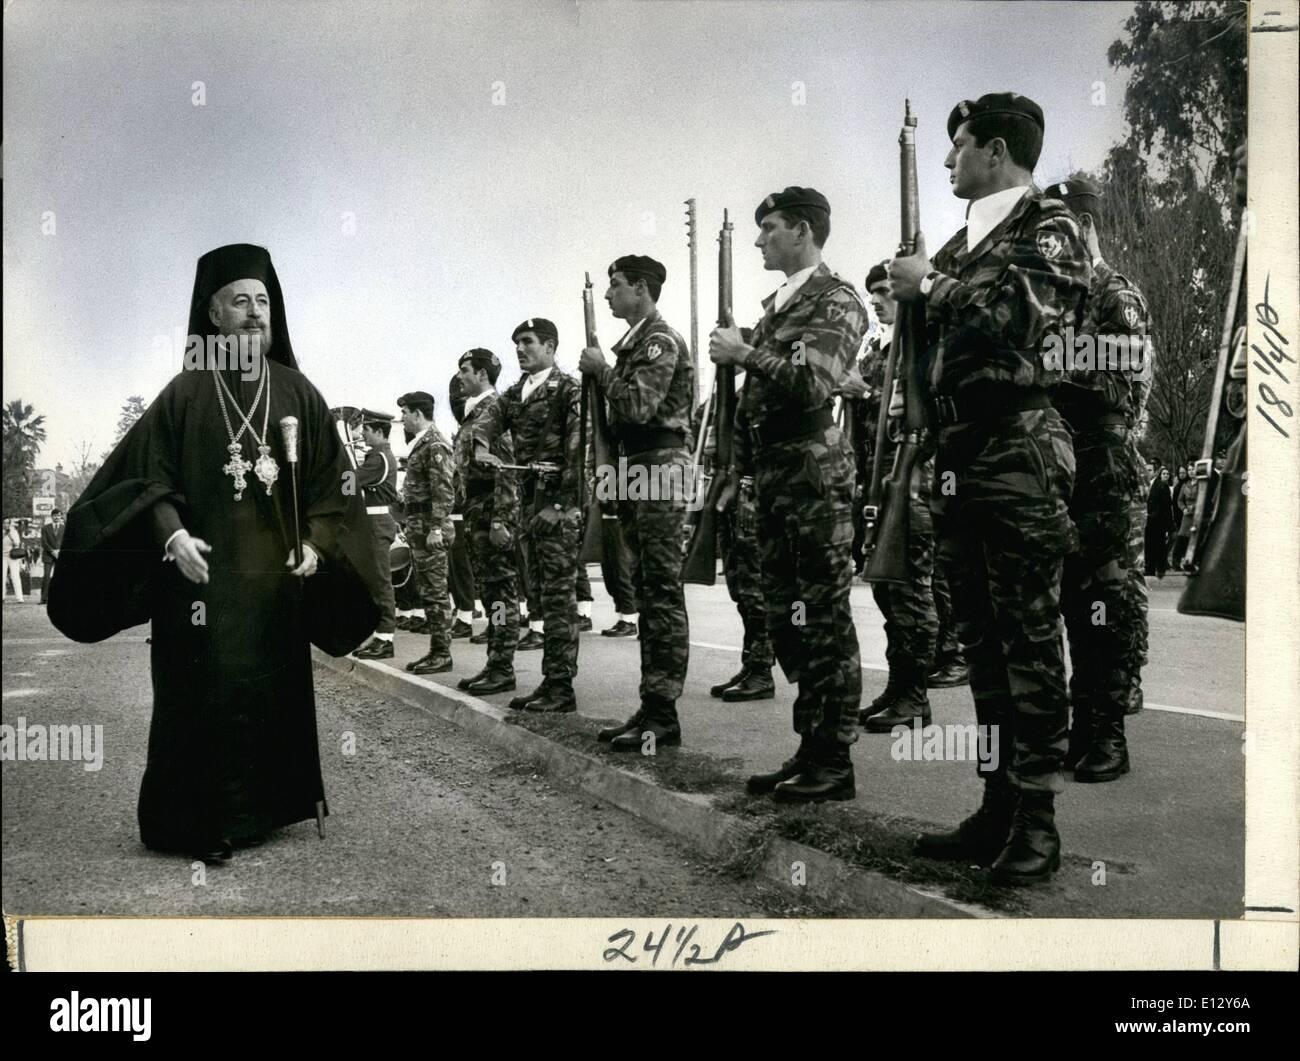 Feb. 25, 2012 - Makarios and Cypriote National Guard, 1973. - Stock Image